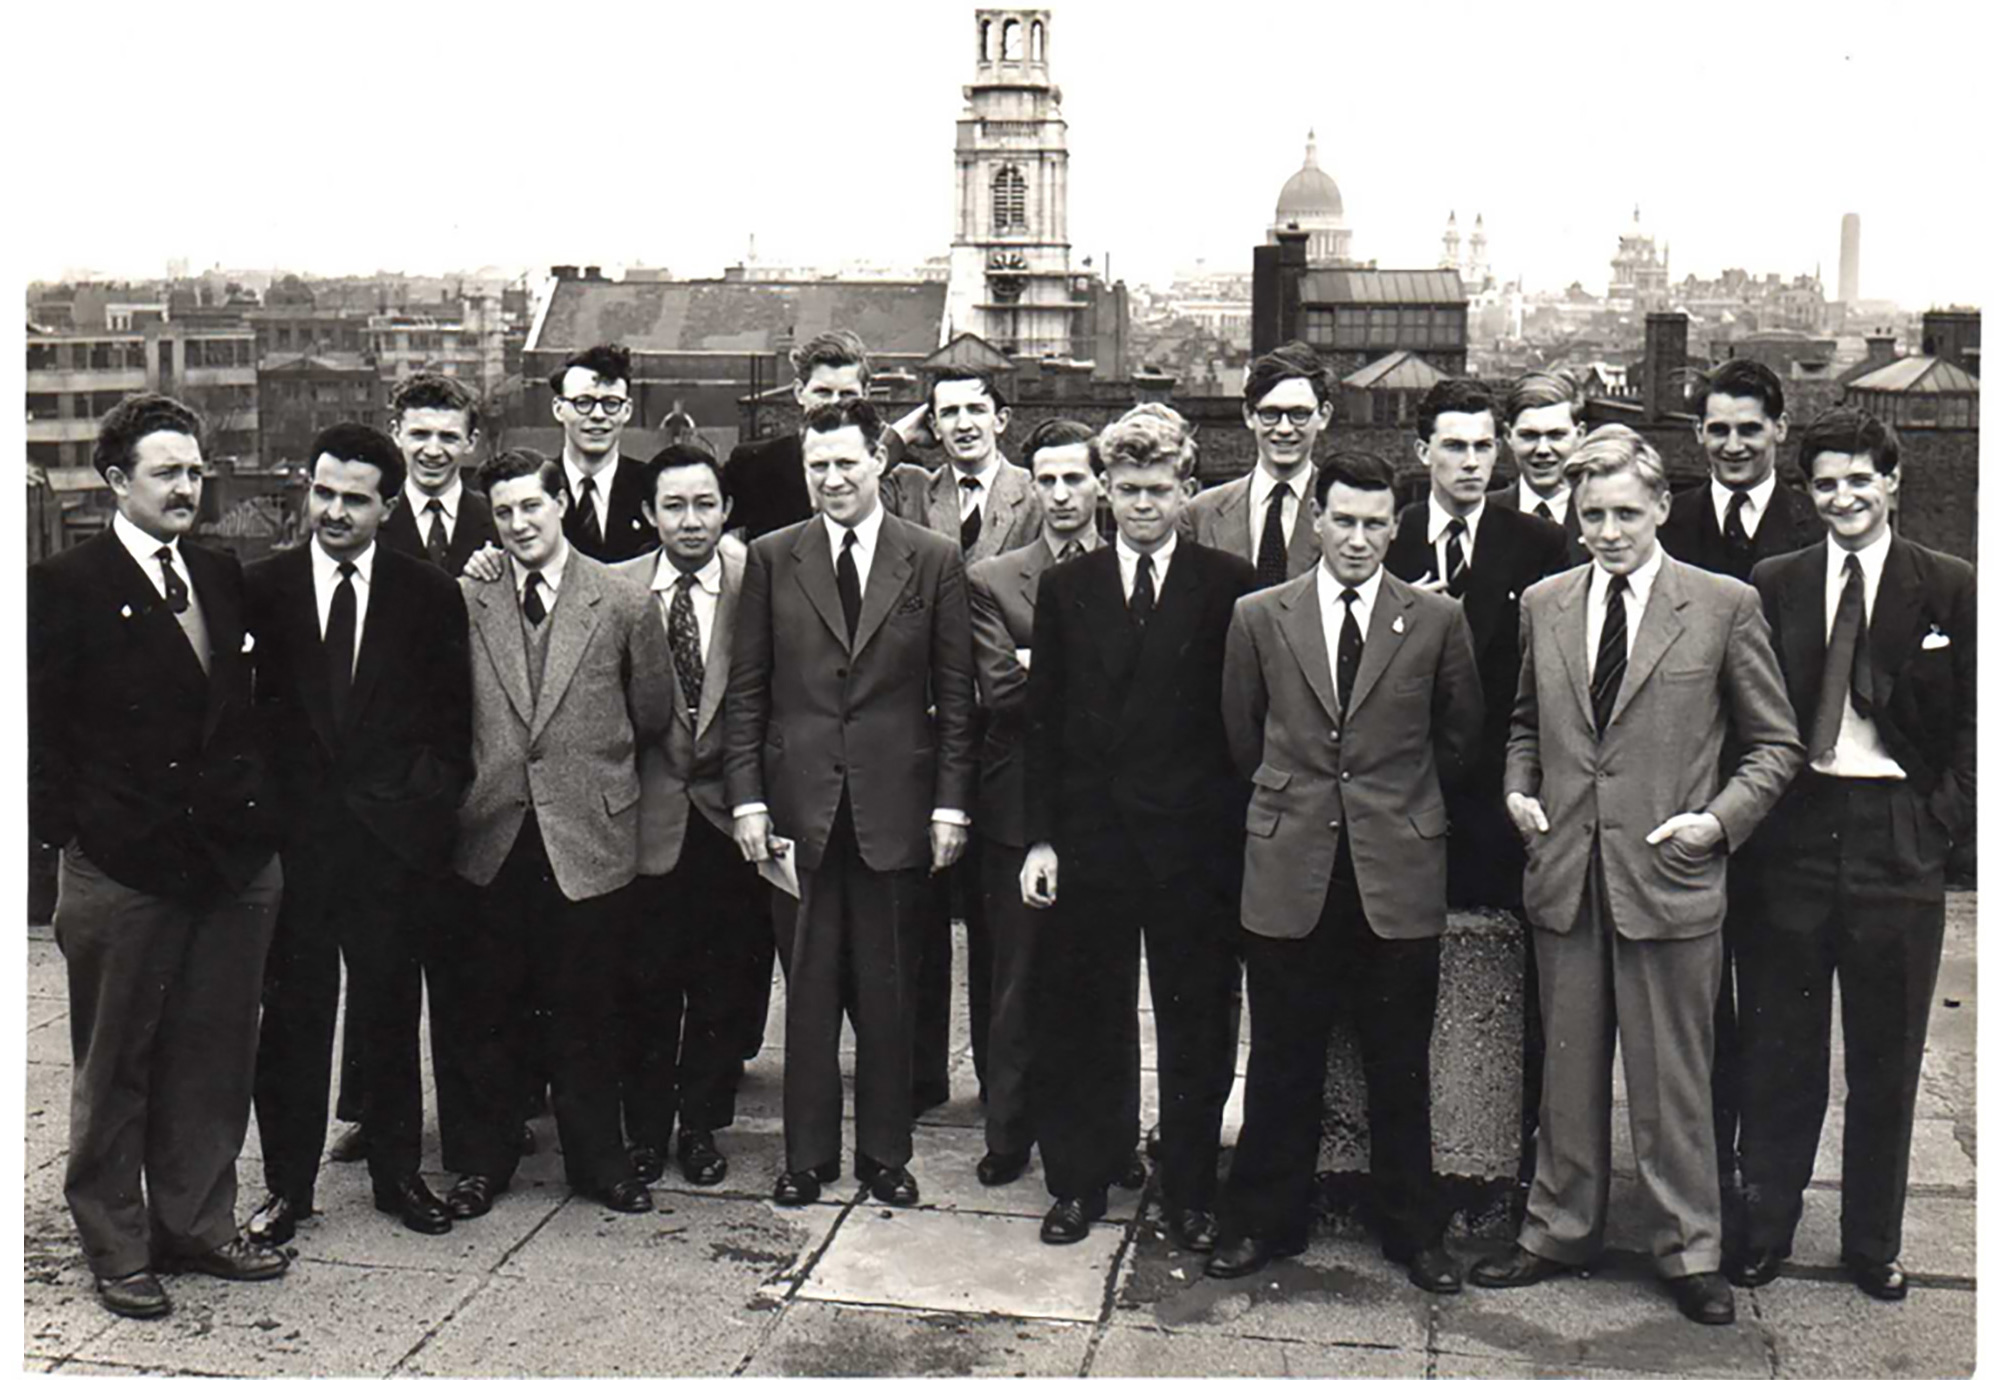 A photograph of the Class of 1956 on a rooftop.